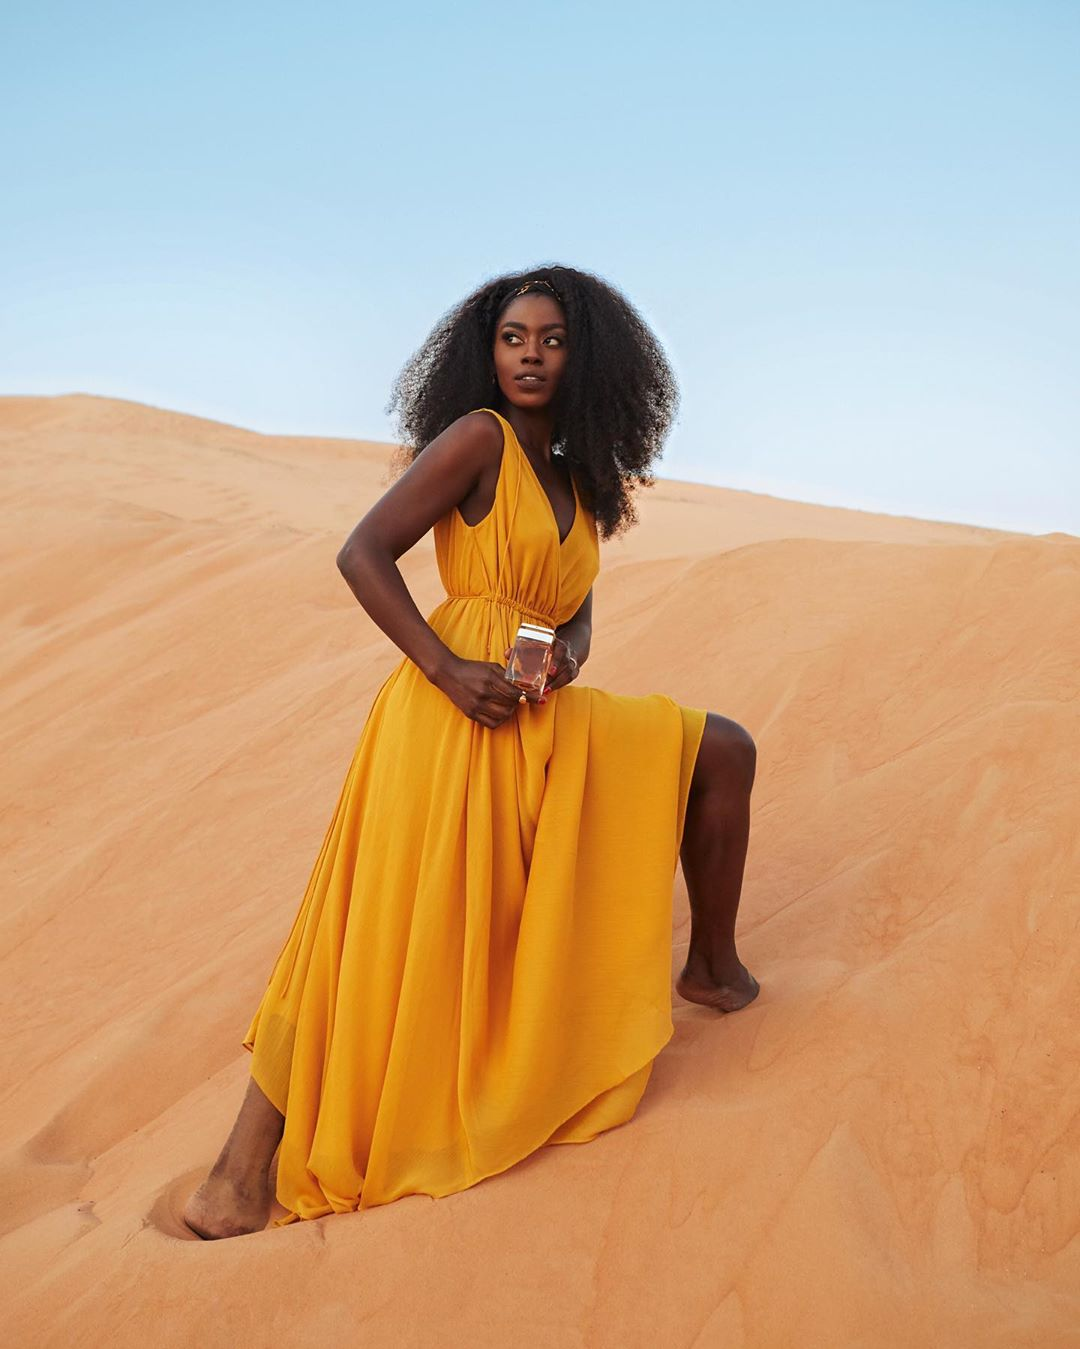 Black Women in Desert